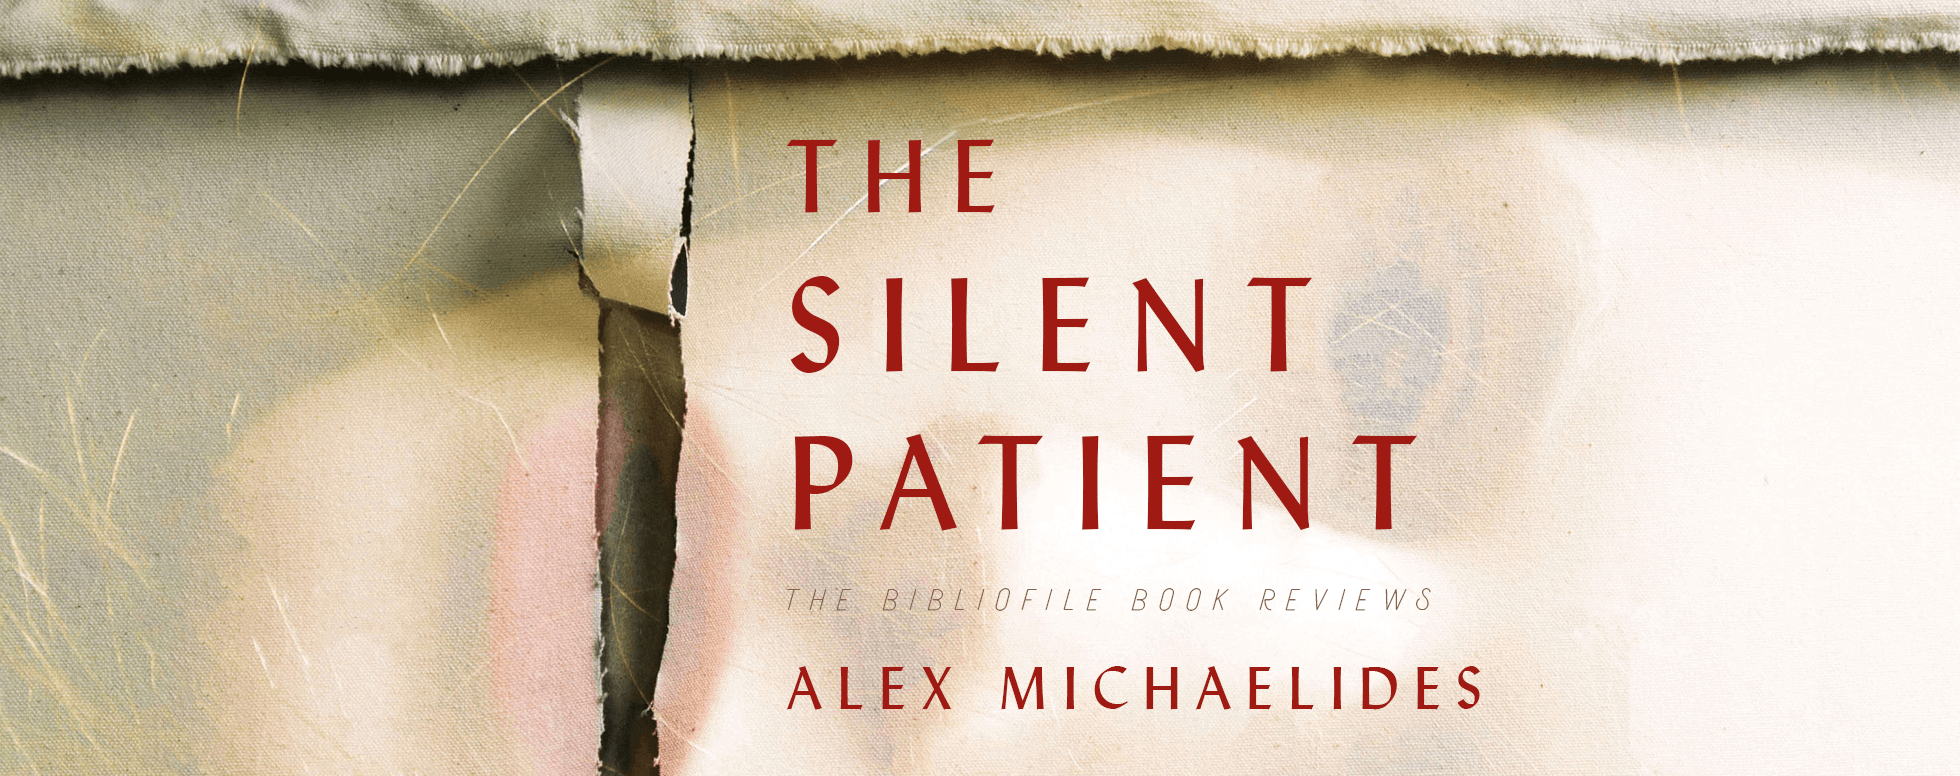 The Silent Patient by Alex Michaelides book review book summary plot synopsis spoilers ending explanation